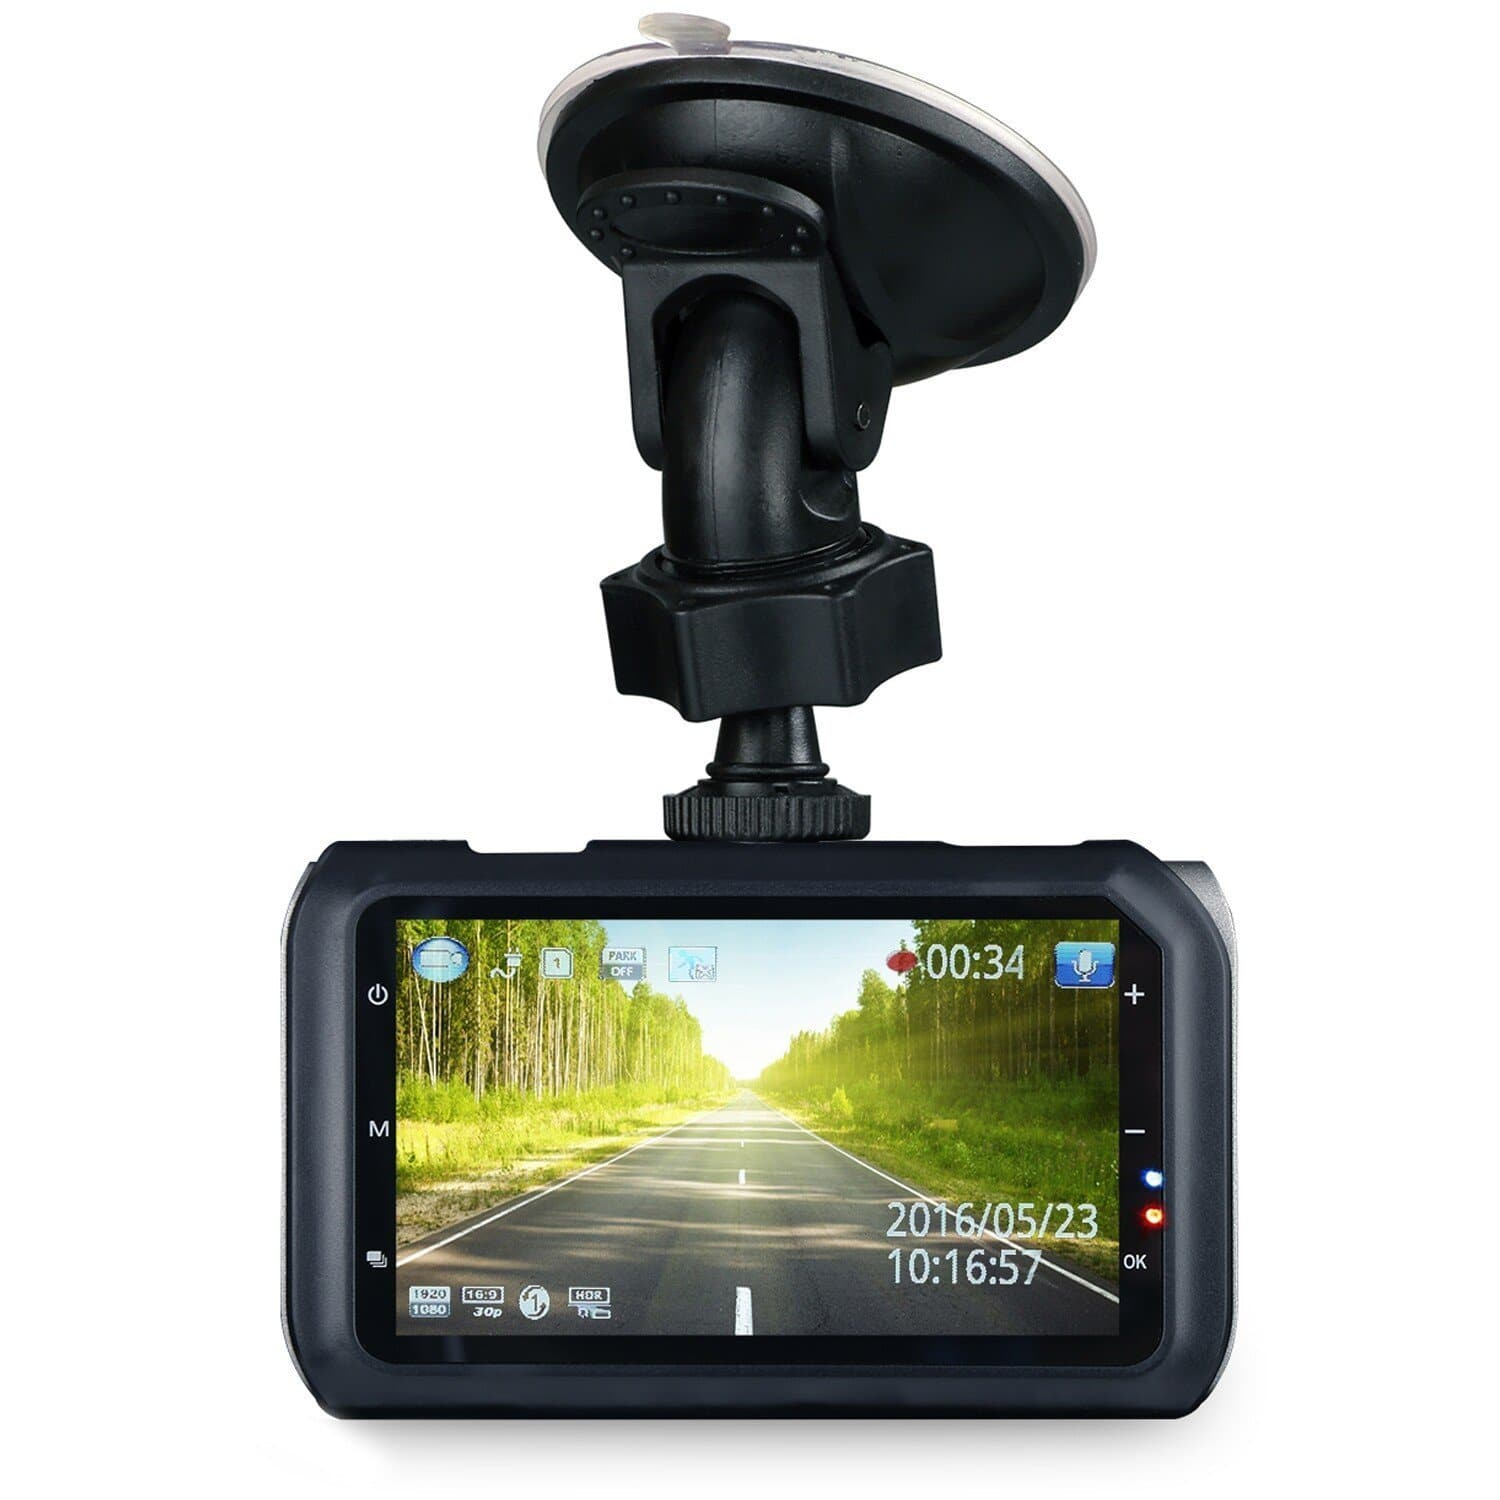 Z-Edge Z3 Ultra HD 2560 x1080 Car Dash Camera 145 Deg Wide Angle Lens w/ Ambarella Chip 32GB SD Card WDR Enhanced Night Vision, G-Sensor, Parking Monitor - $79.99 AC+FS